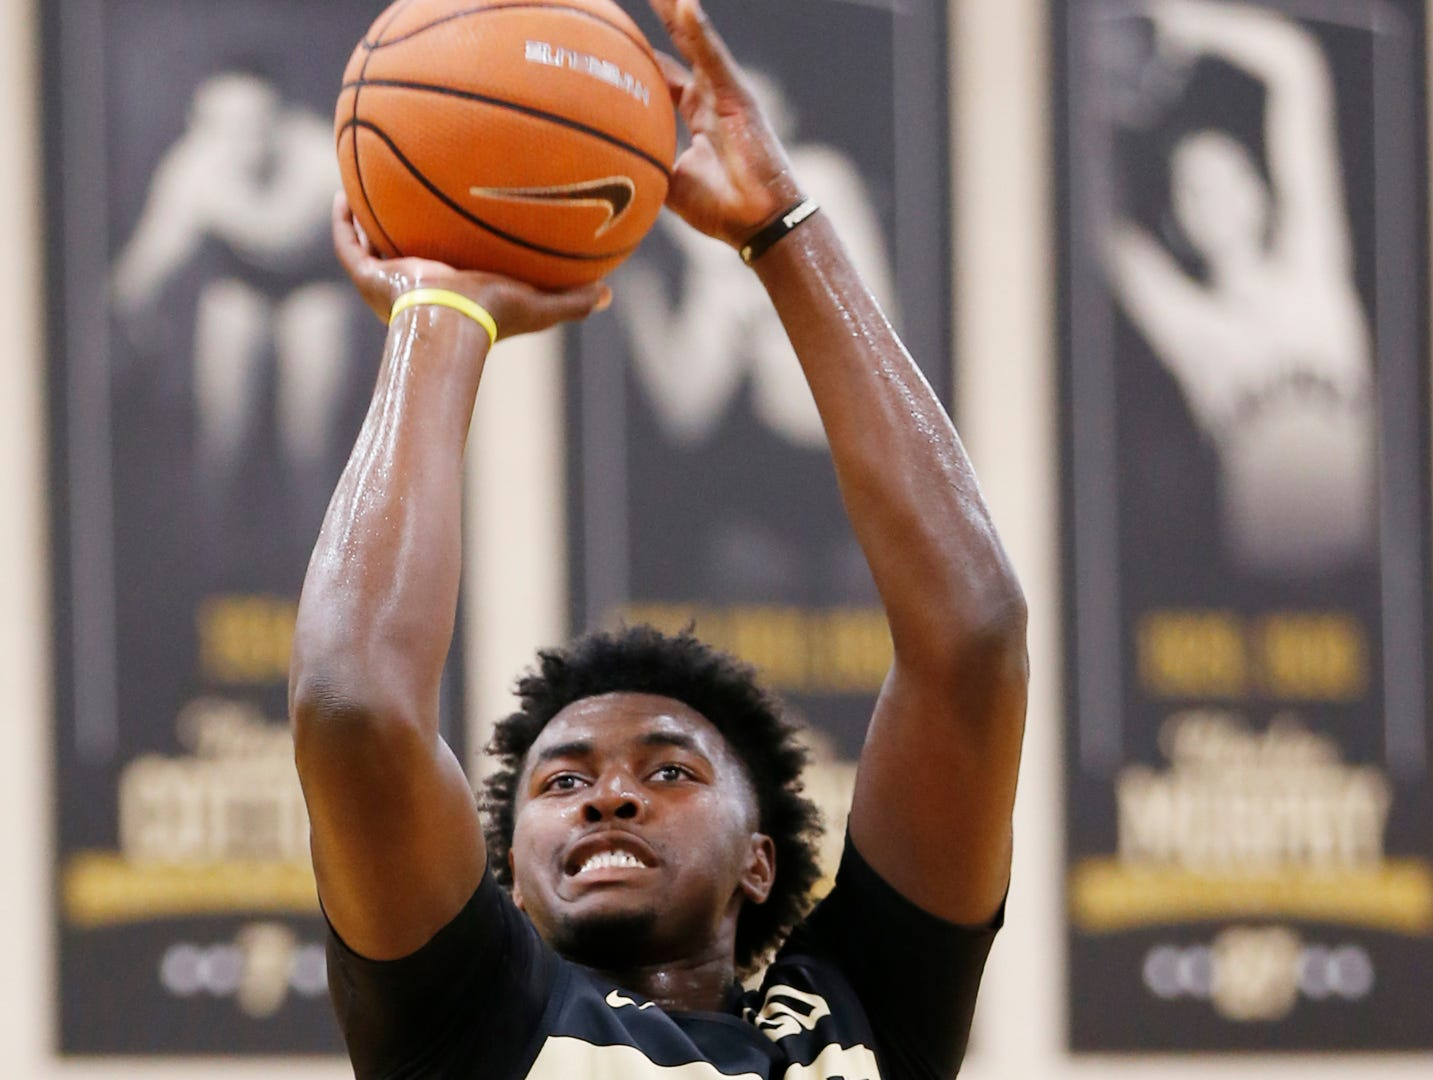 Trevion Williams puts up a shot during the first official practice of the season for Purdue men's basketball Tuesday, September 25, 2018, at Cardinal Court in Mackey Arena.